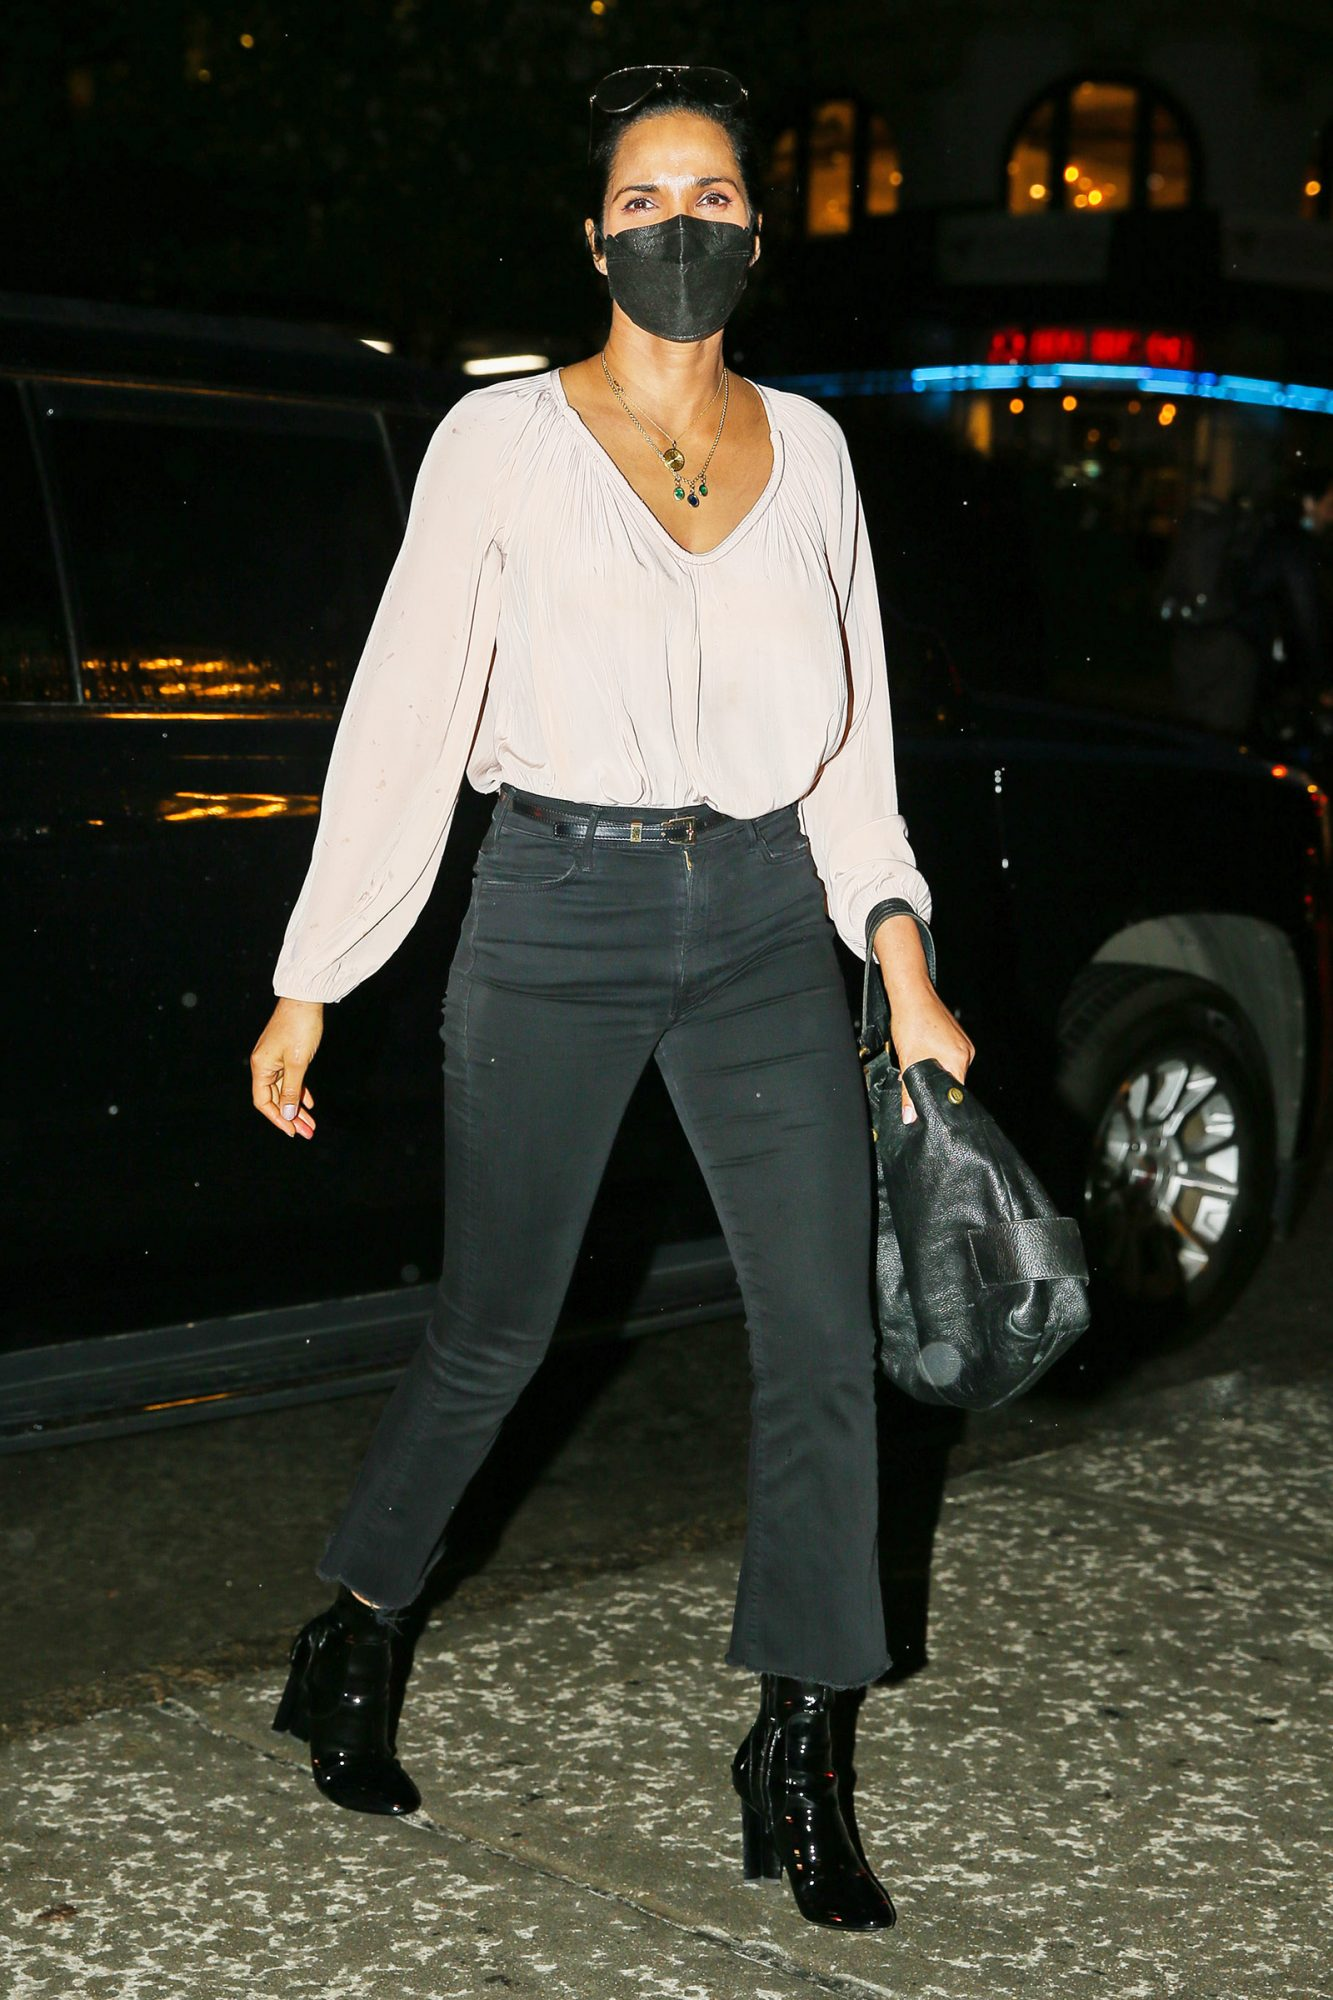 Padma Lakshmi Spotted On A Night Out In New York City